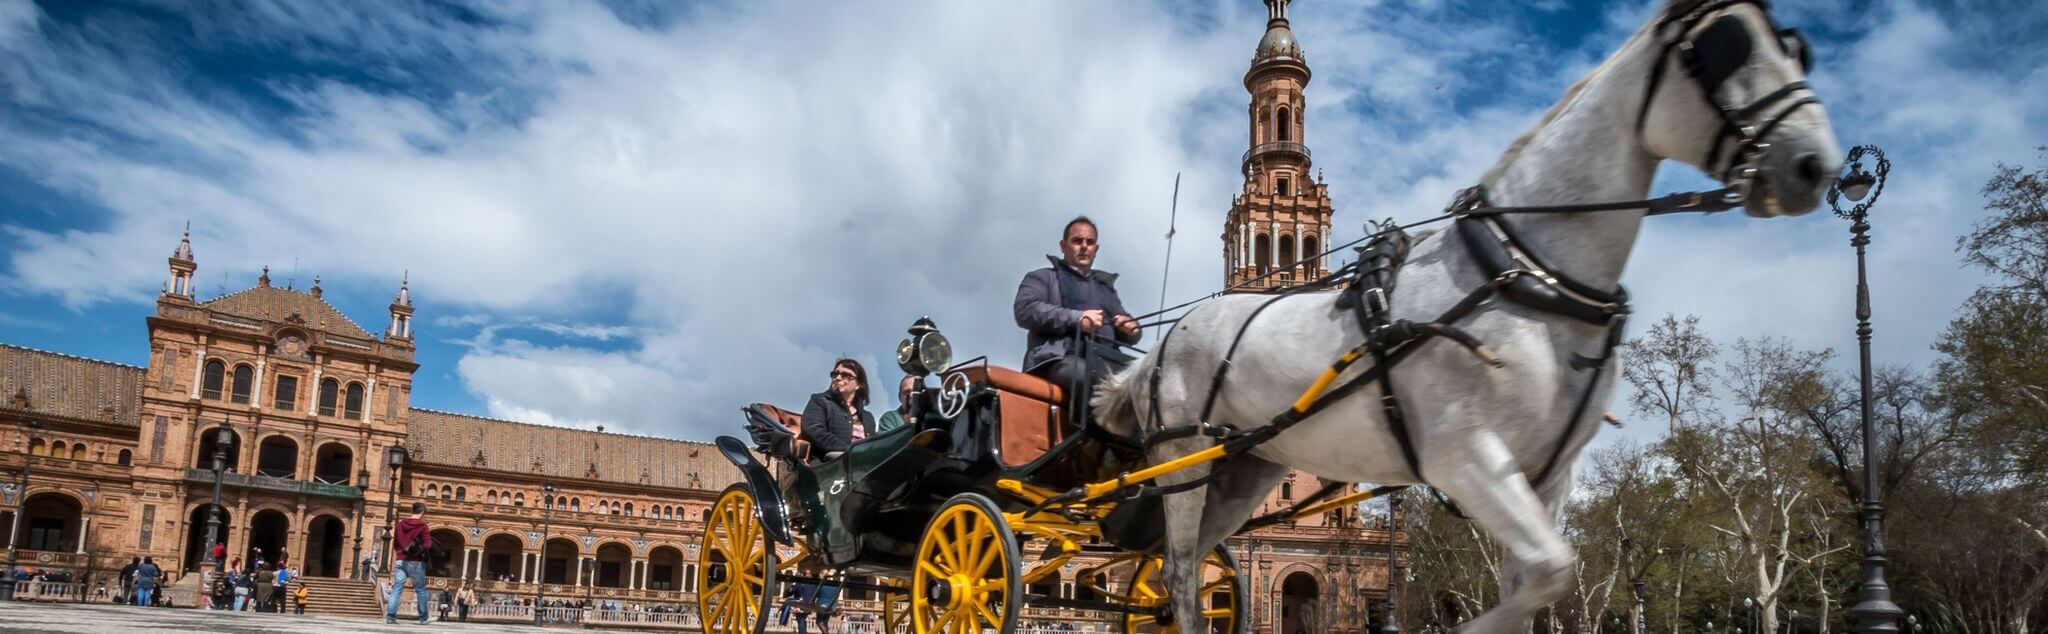 Giro in Carrozza a Ciudad Real